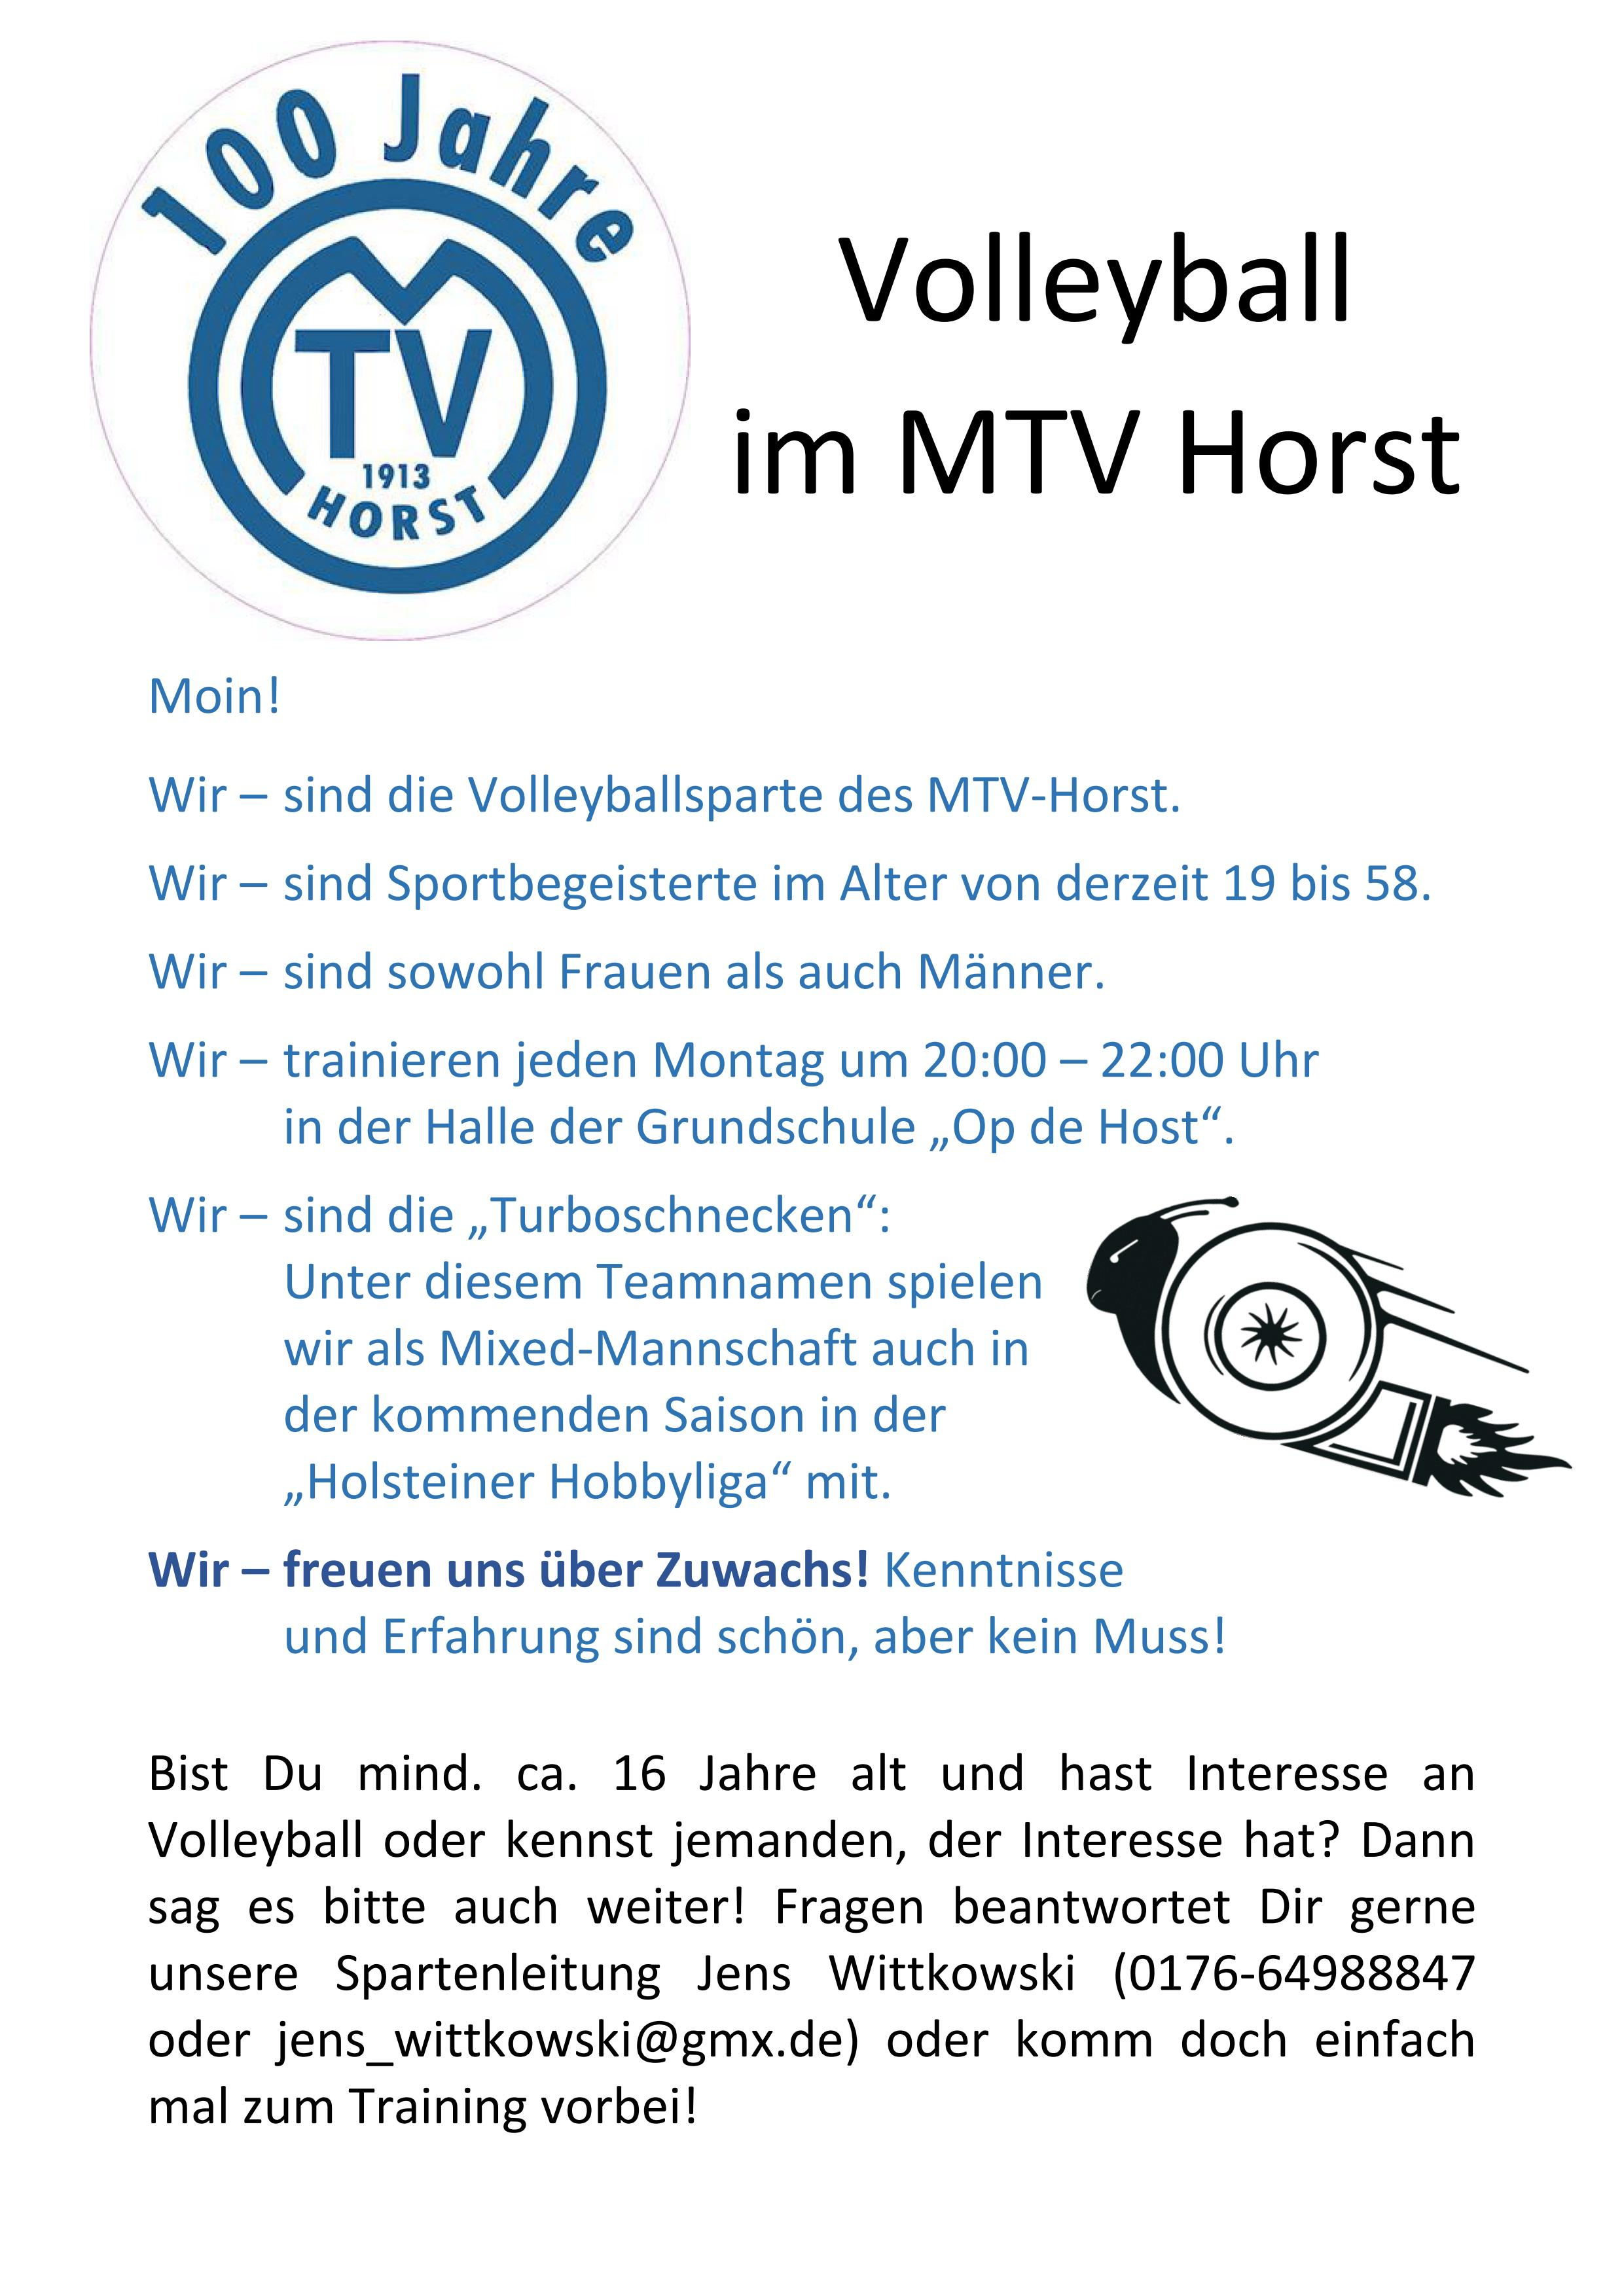 MTV Horst - Volleyball